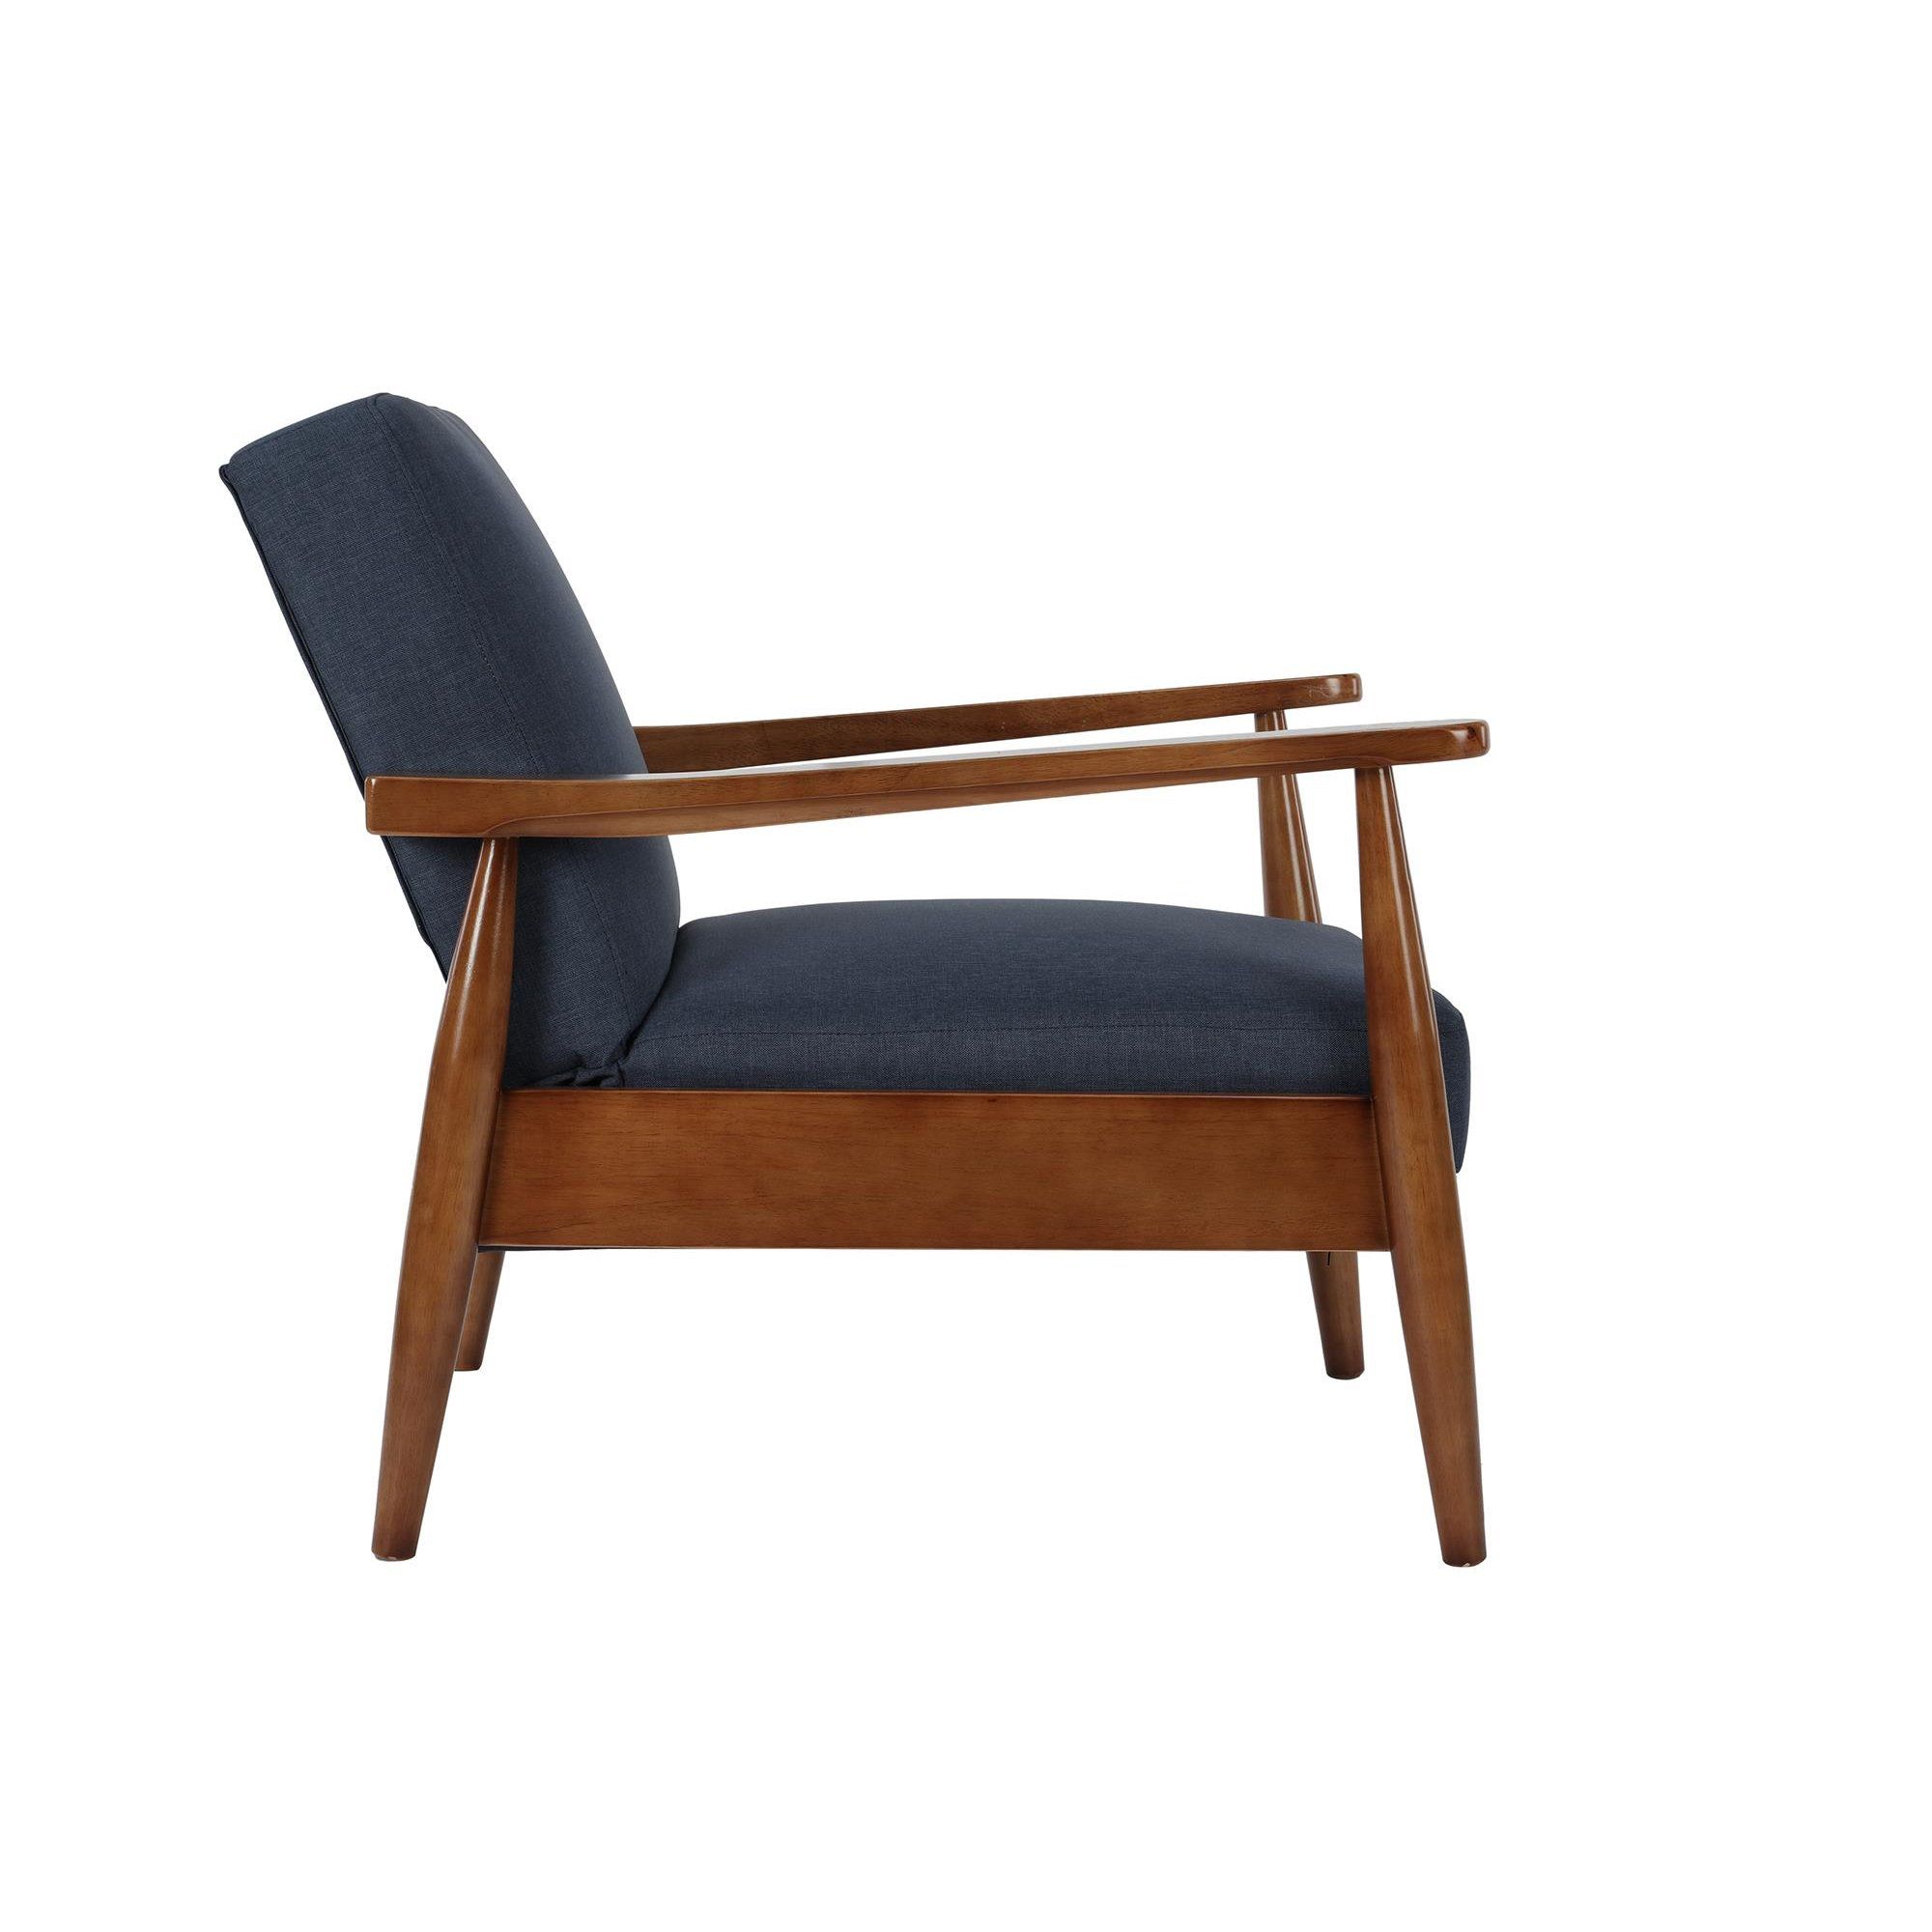 Better Homes Gardens Mid Century Chair Adjustable Position Wood With Linen Upholstery Blue Walmart Com Mid Century Modern Accent Chairs Blue Accent Chairs Mid Century Modern Lounge Chairs